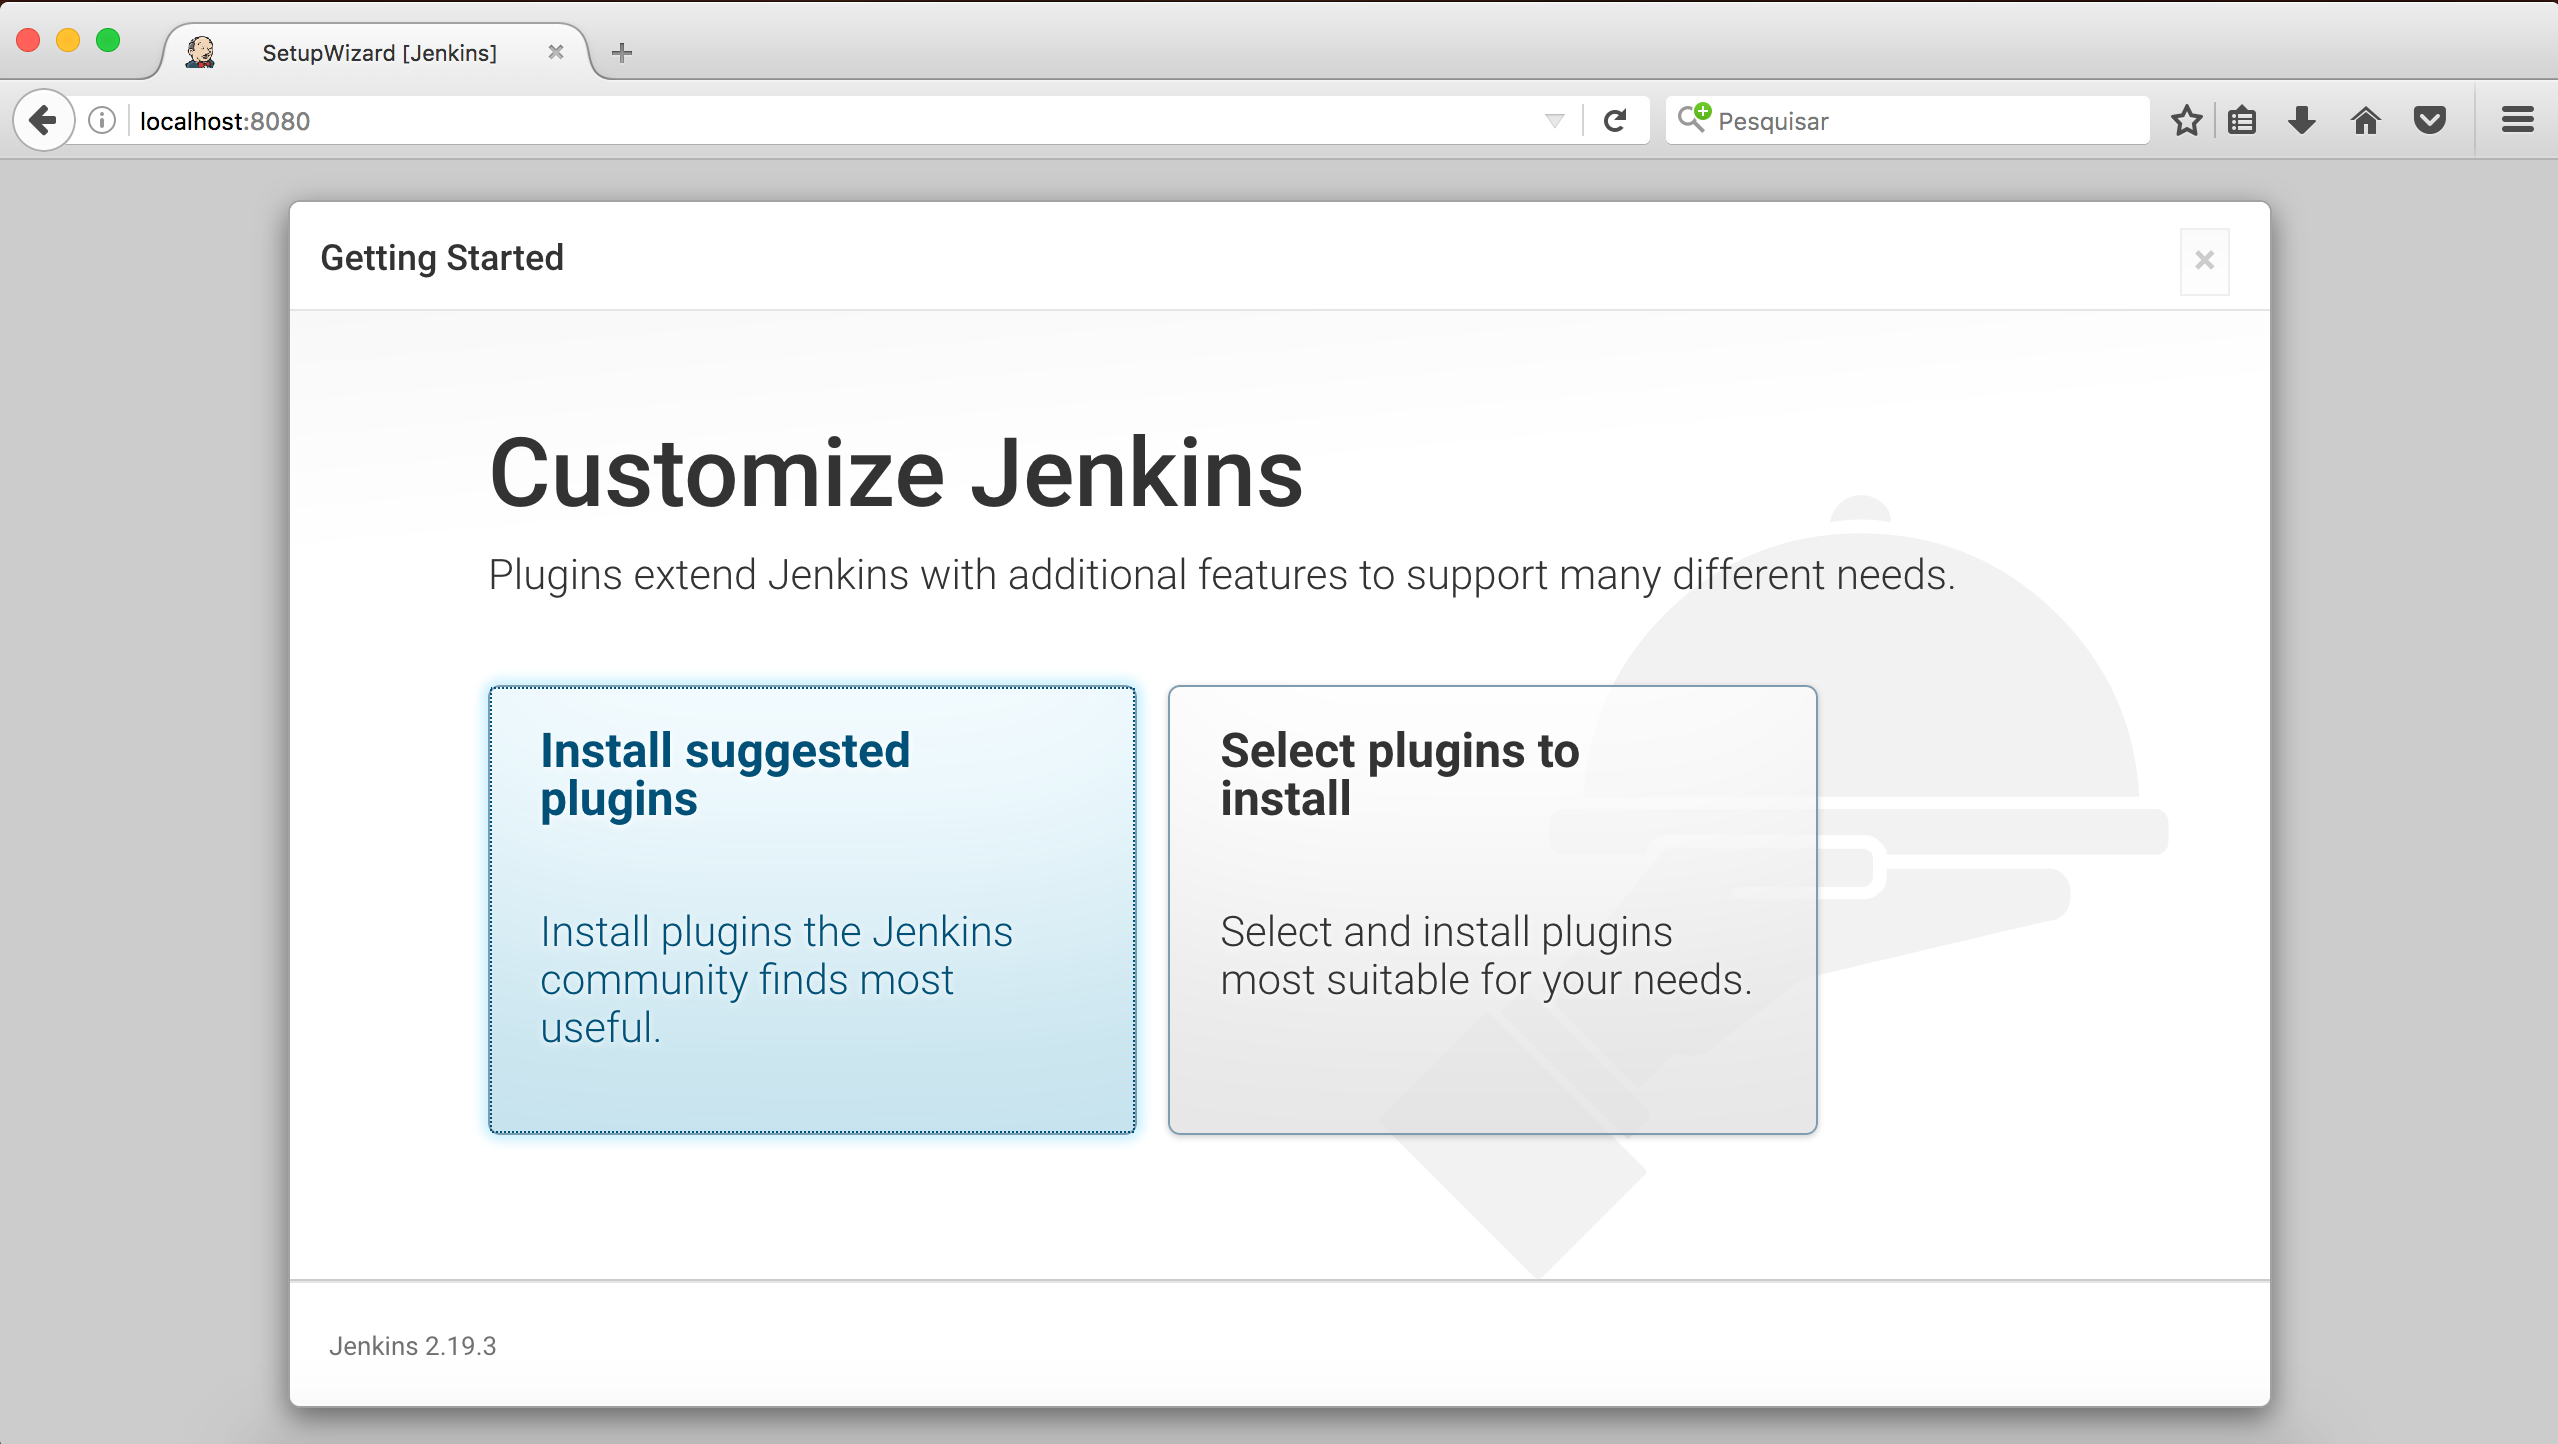 CustomizeJenkins